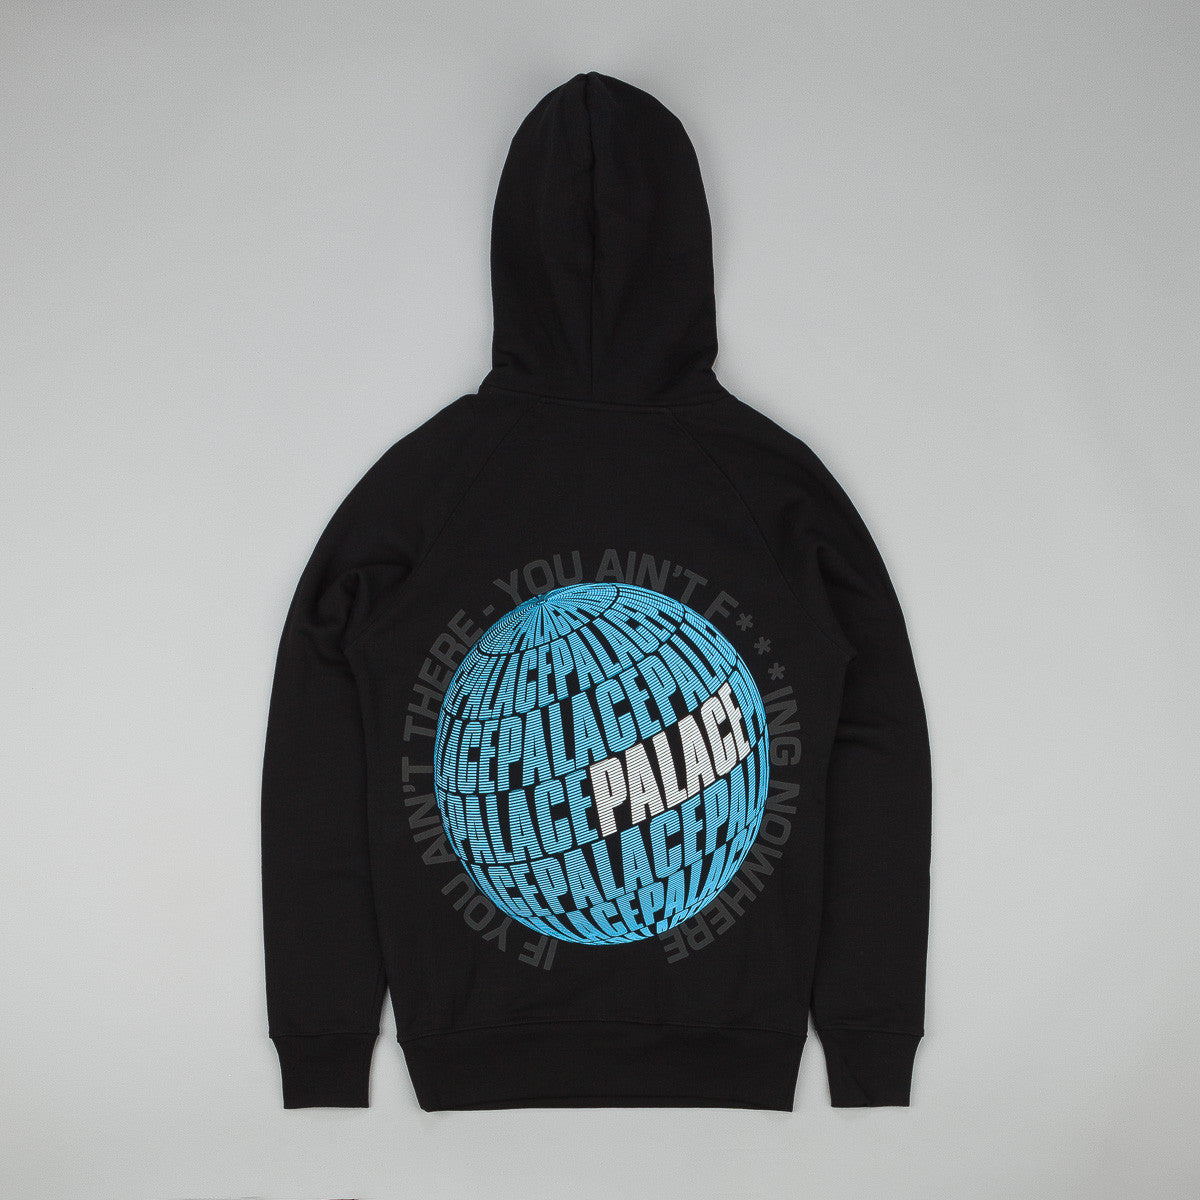 Palace If You Ain't There Hooded Sweatshirt - Black